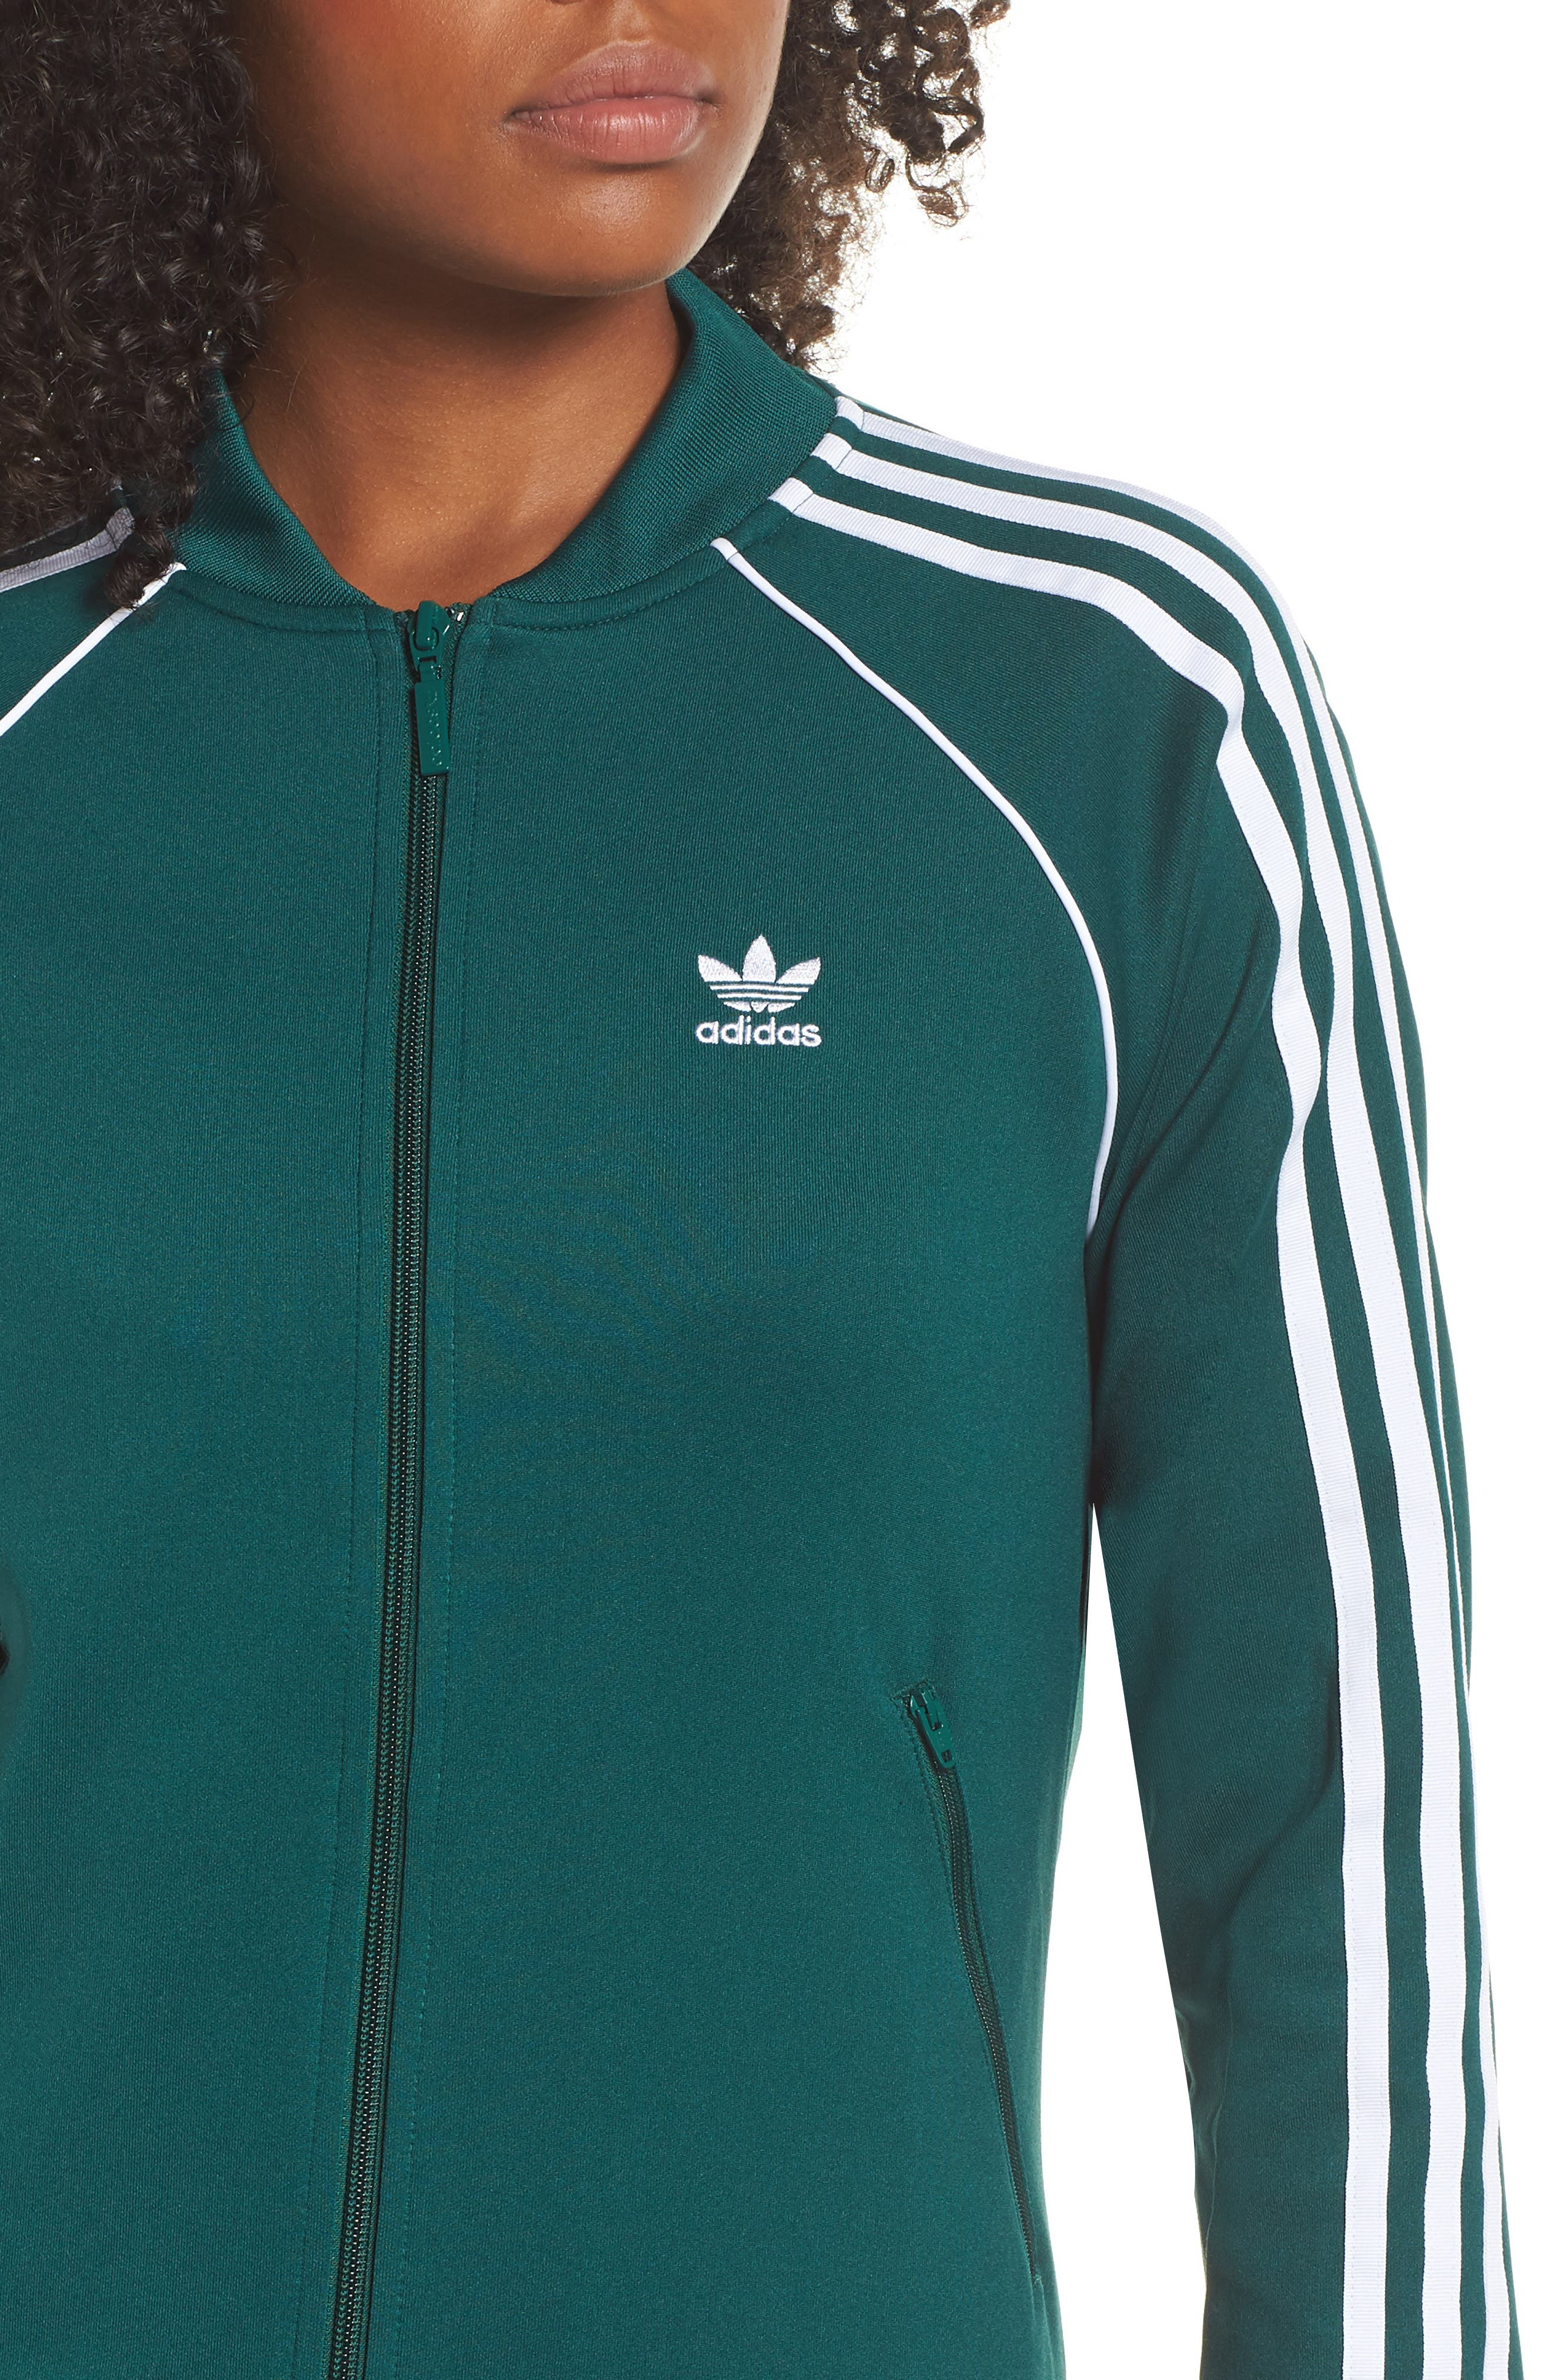 adidas SST Track Jacket,                             Alternate thumbnail 4, color,                             305